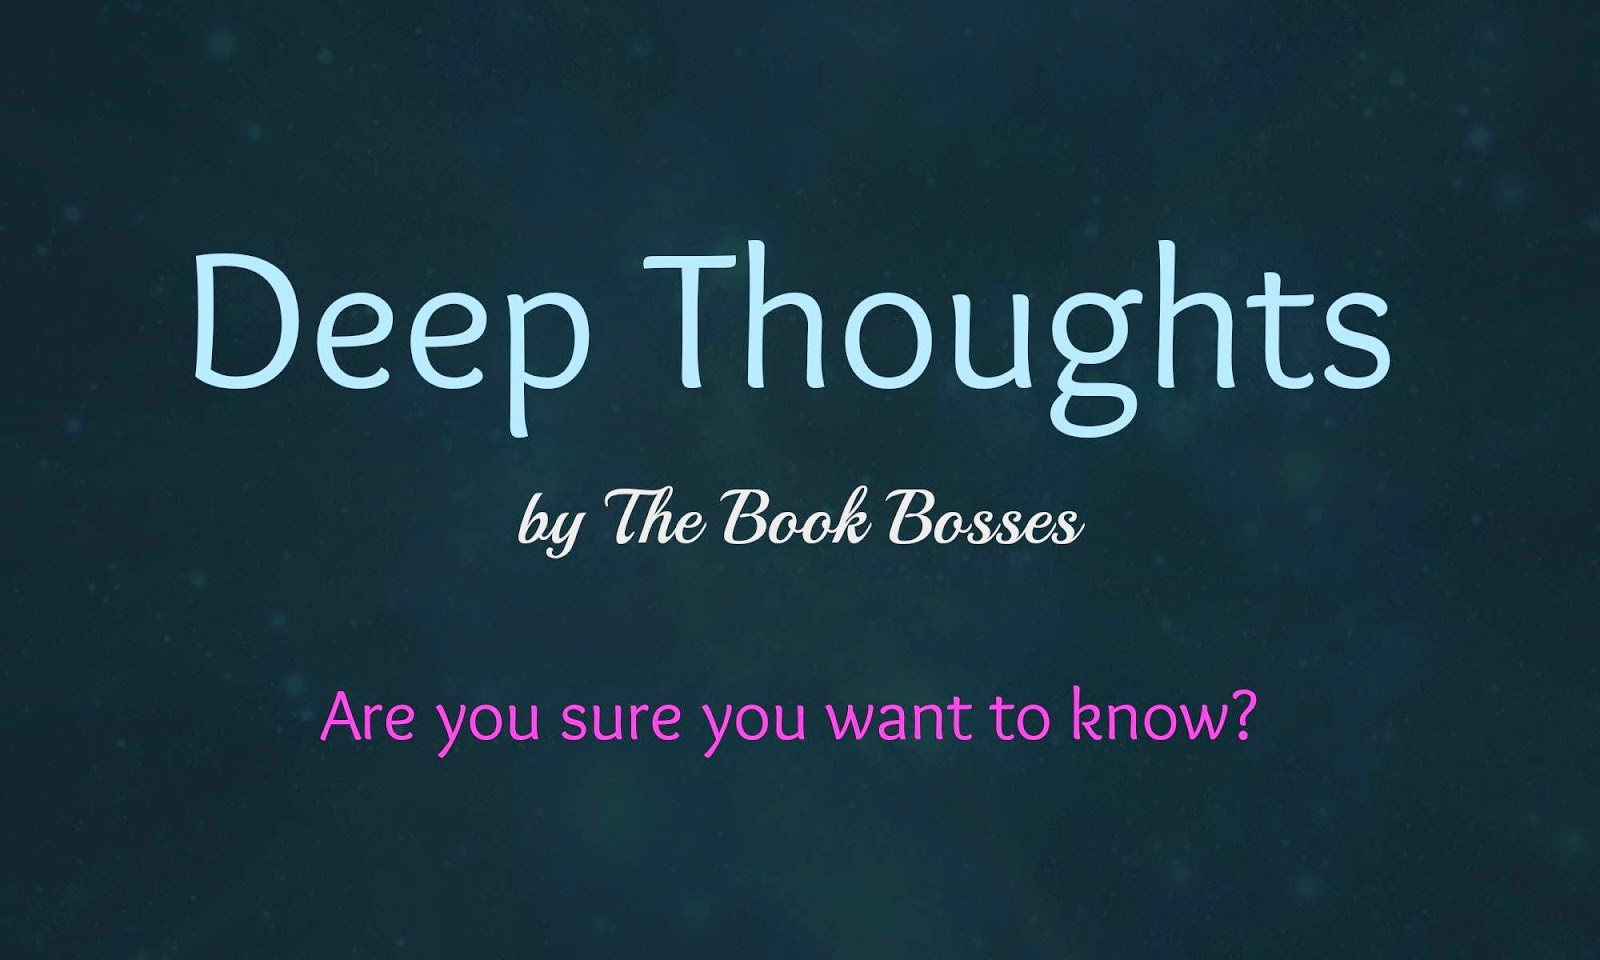 deep thoughts book bosses